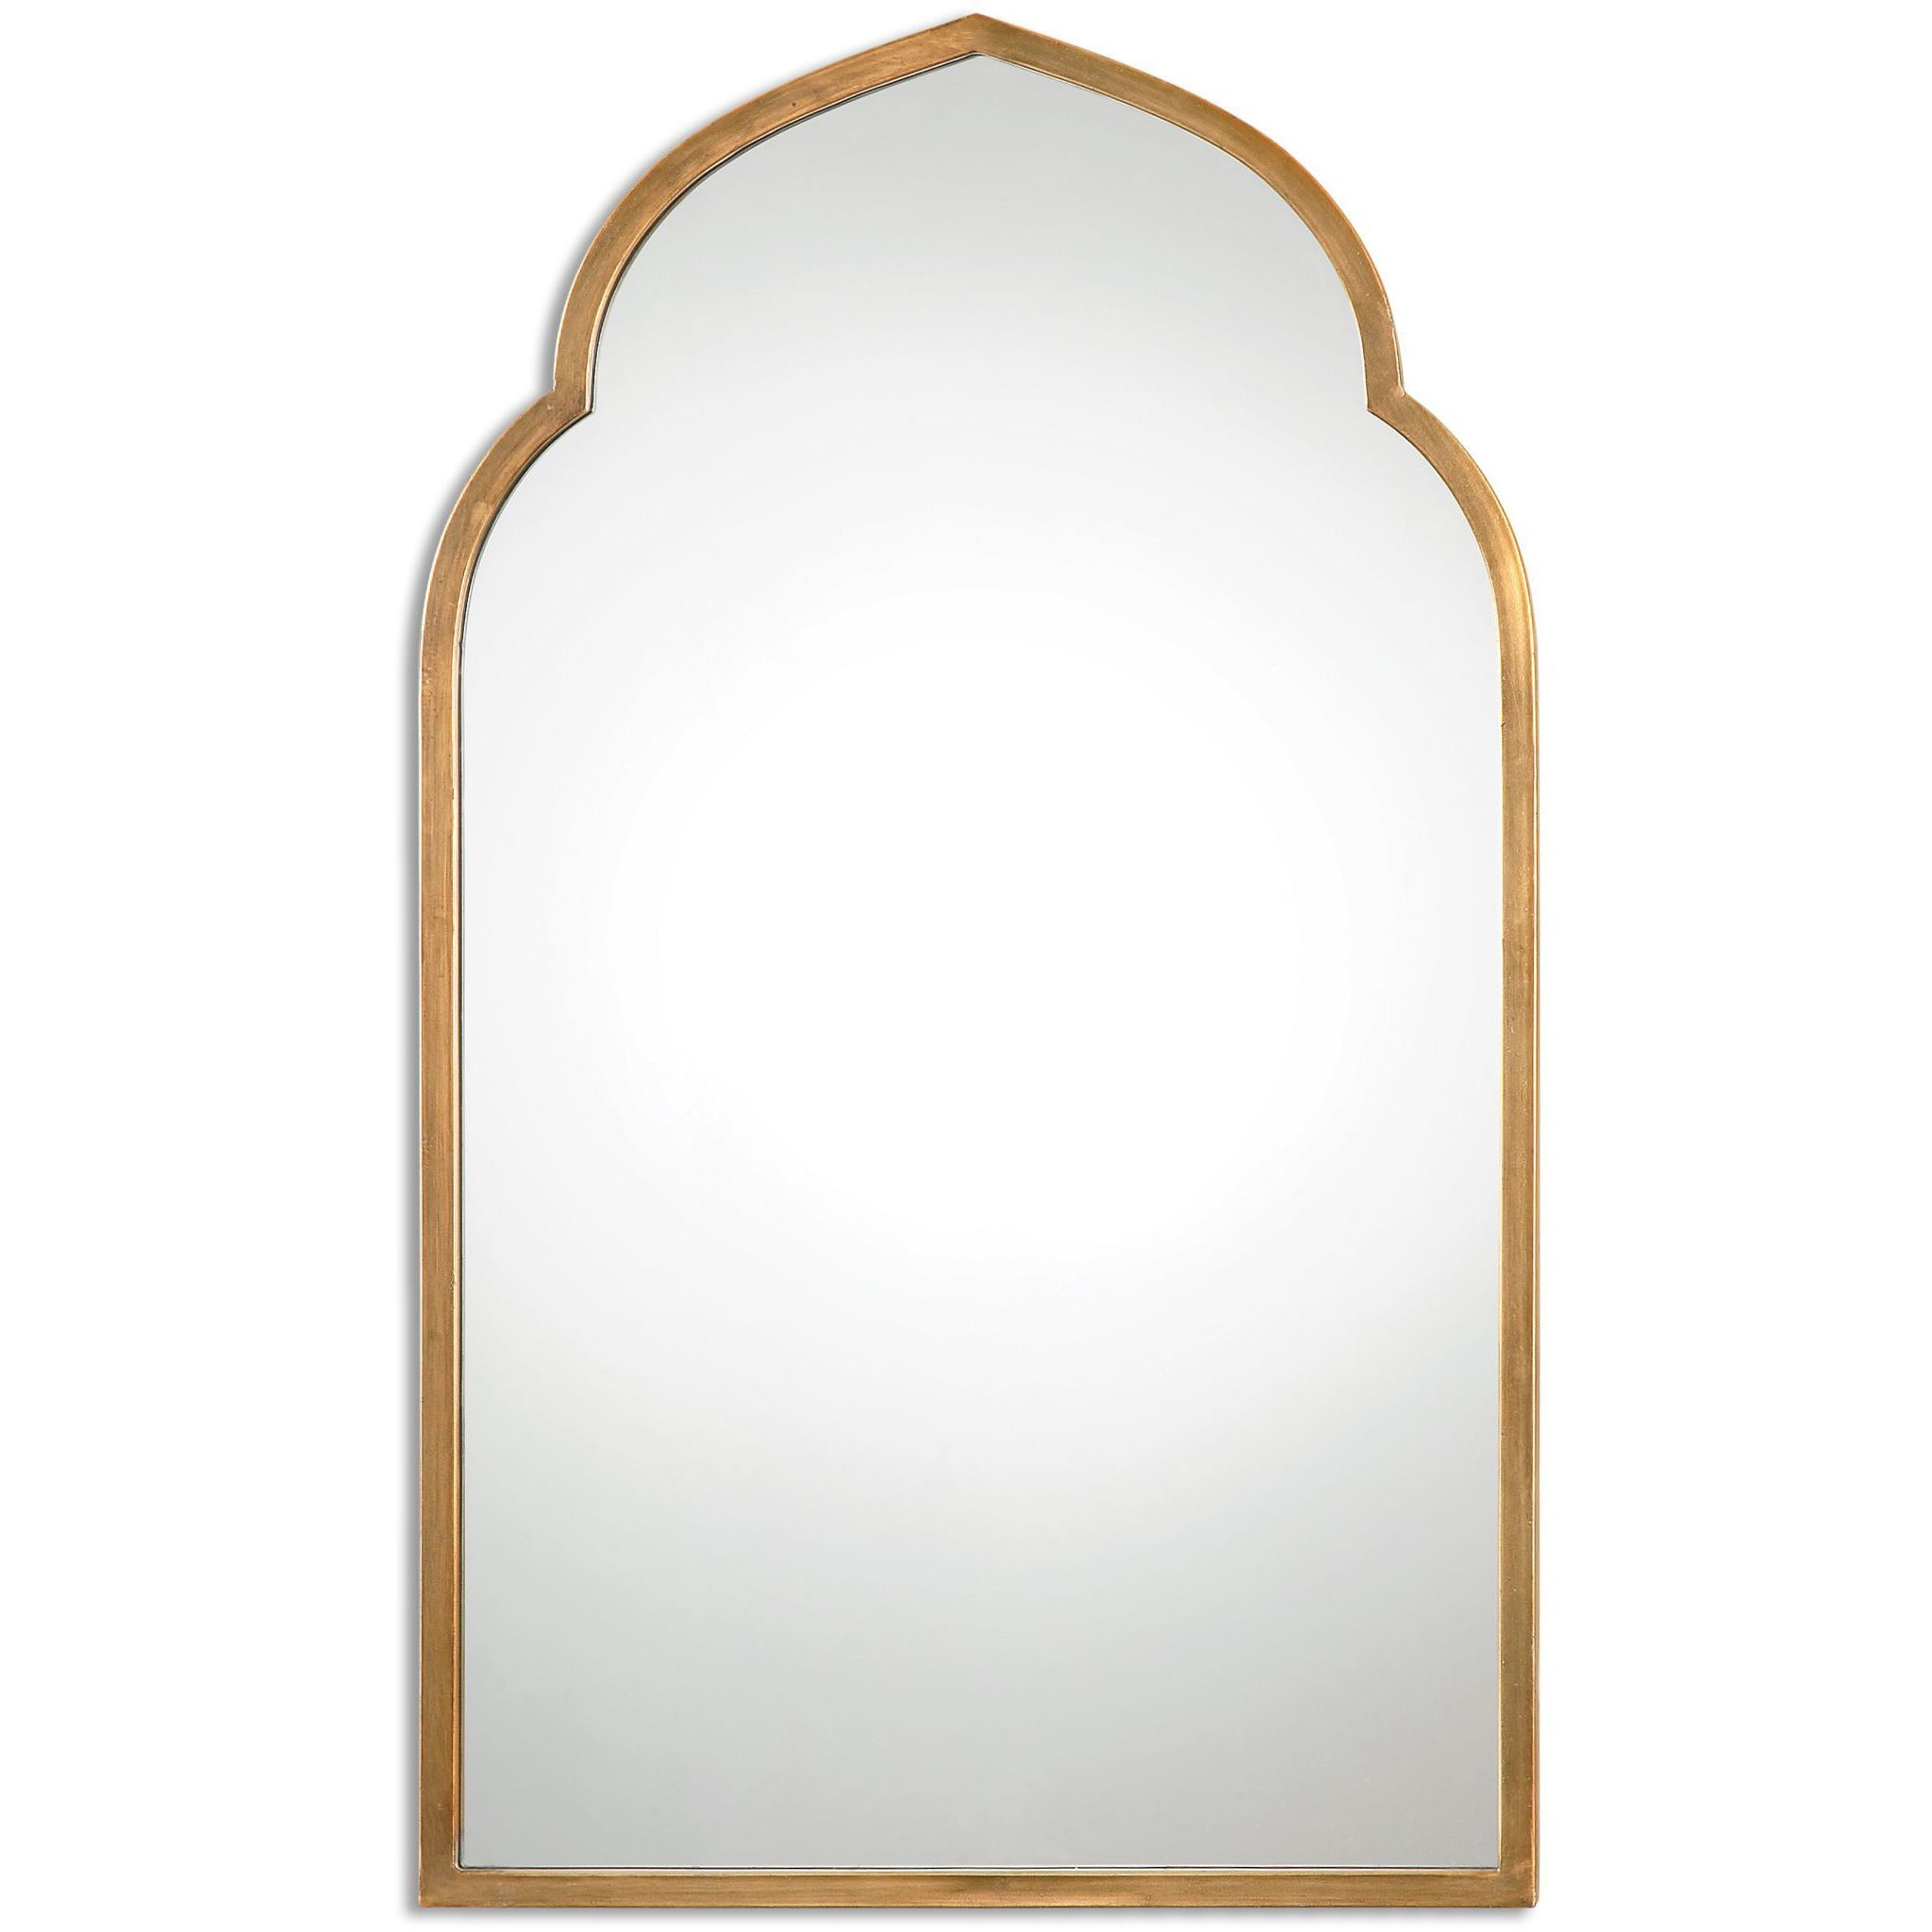 Uttermost Kenitra Gold Arch Decorative Wall Mirror by Uttermost